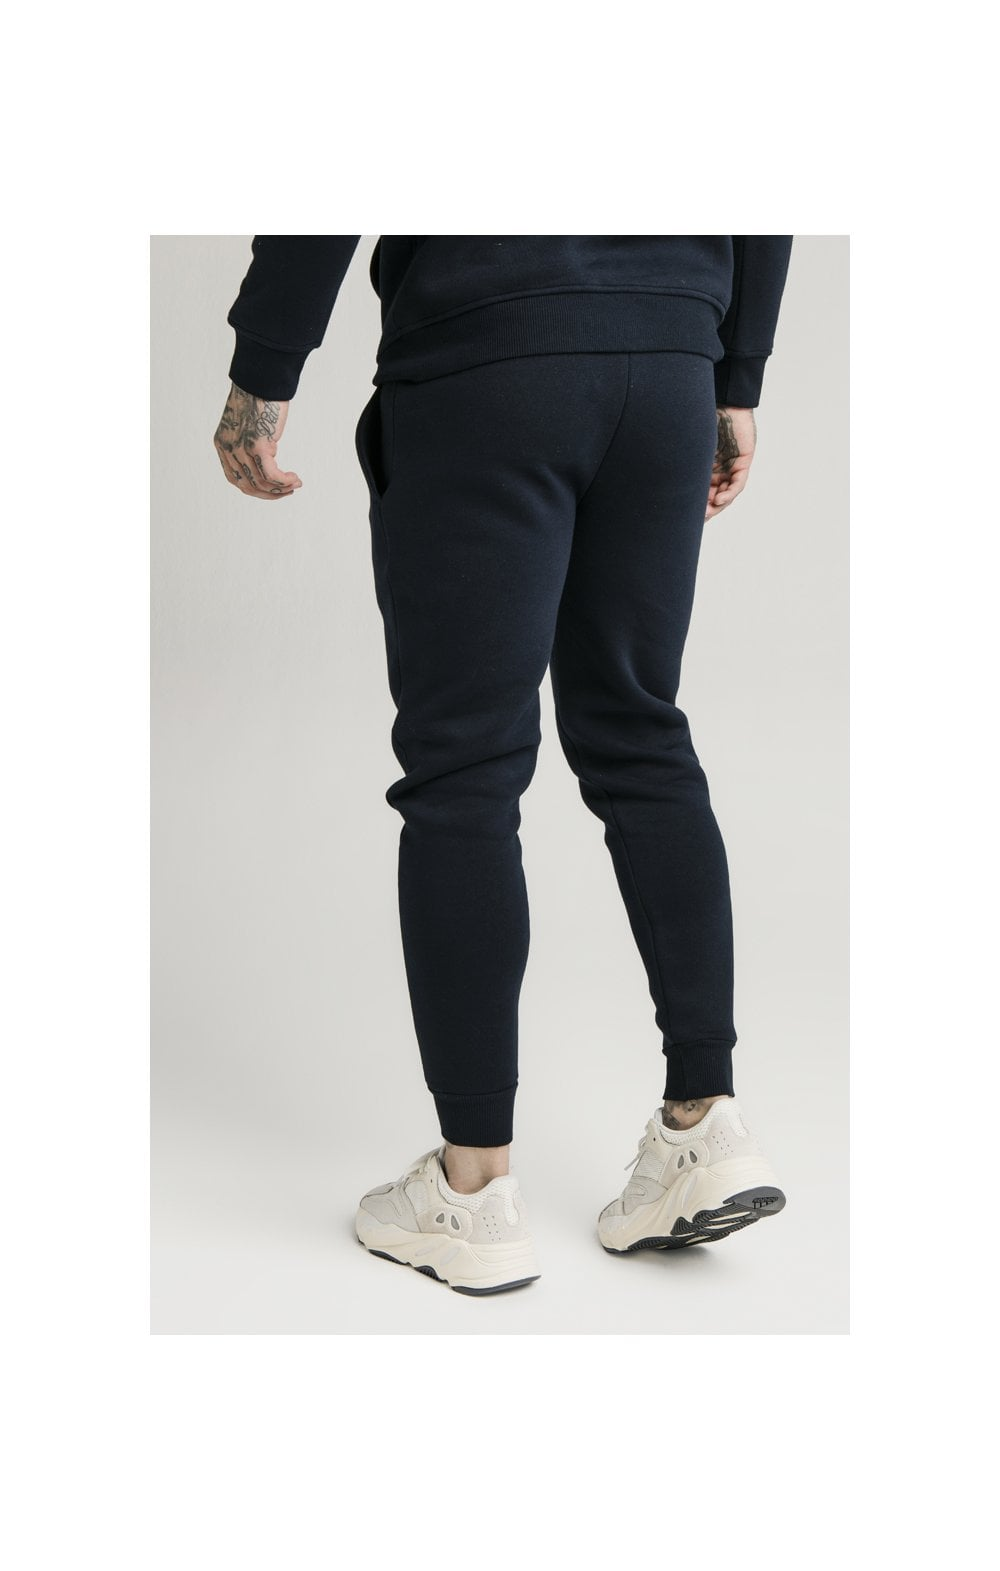 SikSilk Muscle Fit Jogger – Navy (3)